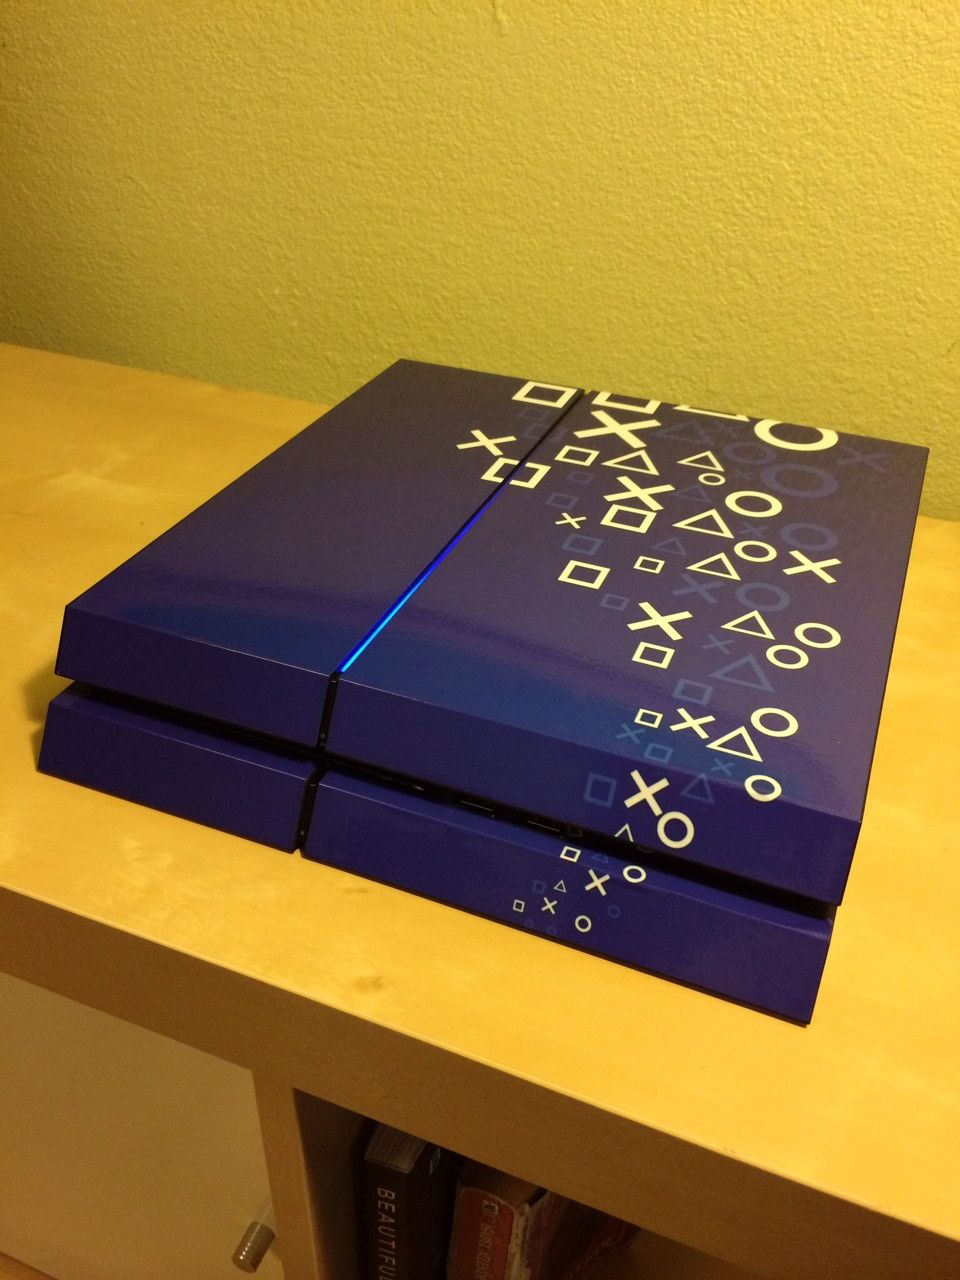 PS4 Skin via Reddit user HipHopAnonymous23 | PlayStation | Ps4 skins